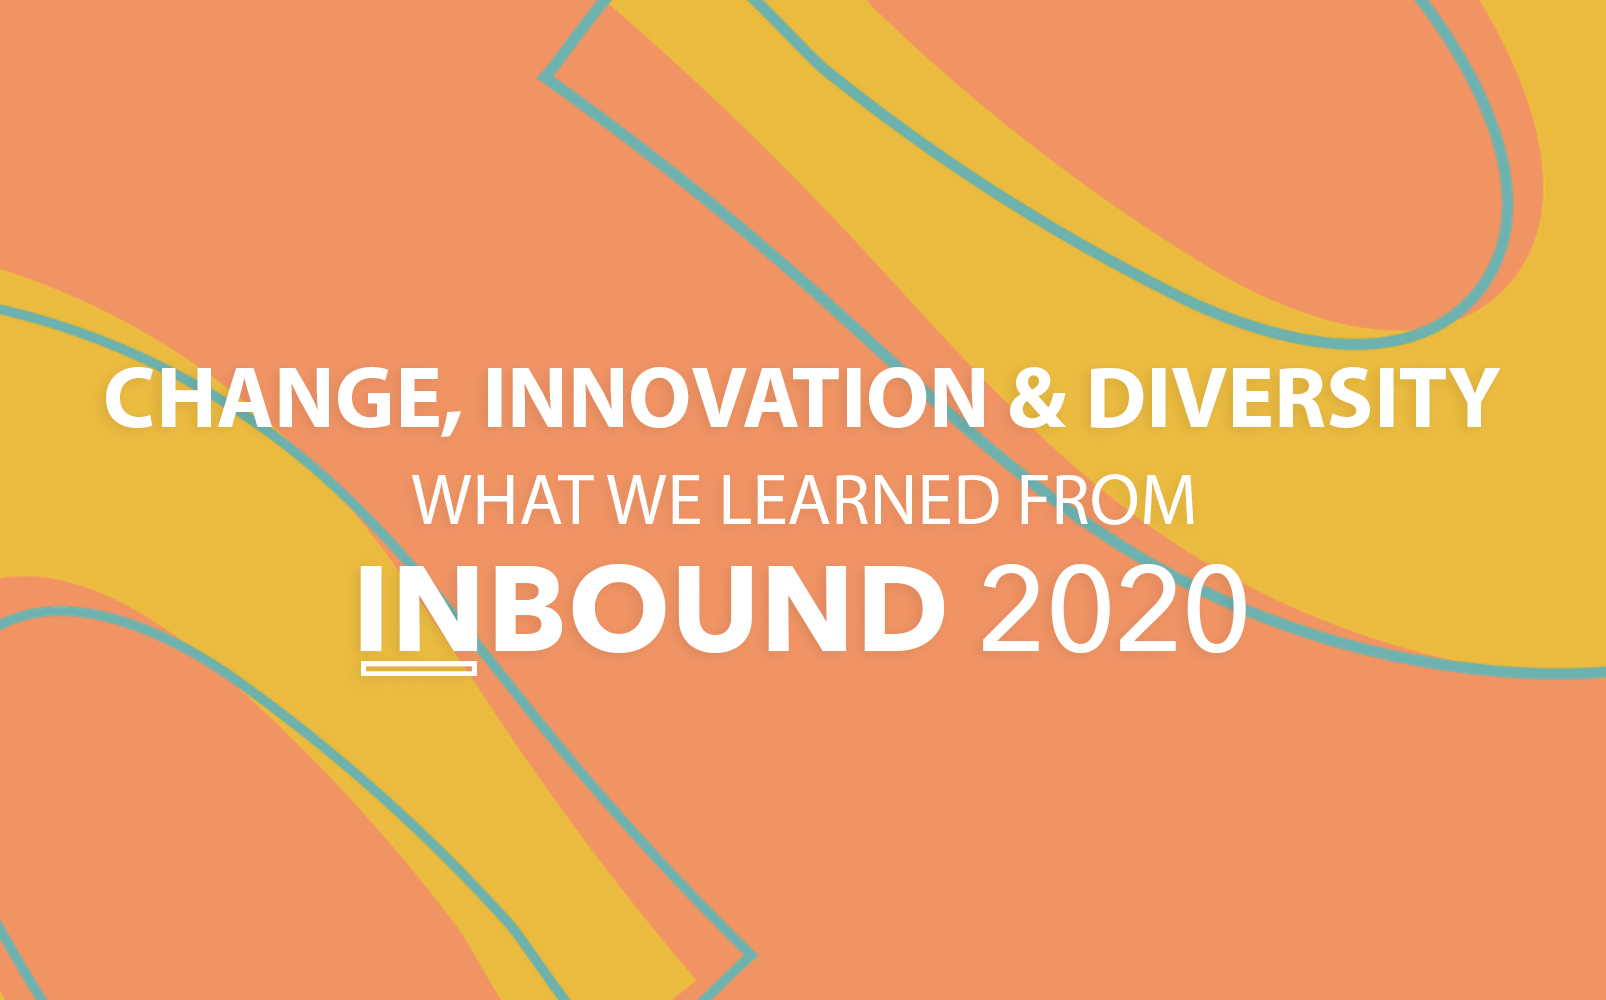 what we learned from Inbound 2020